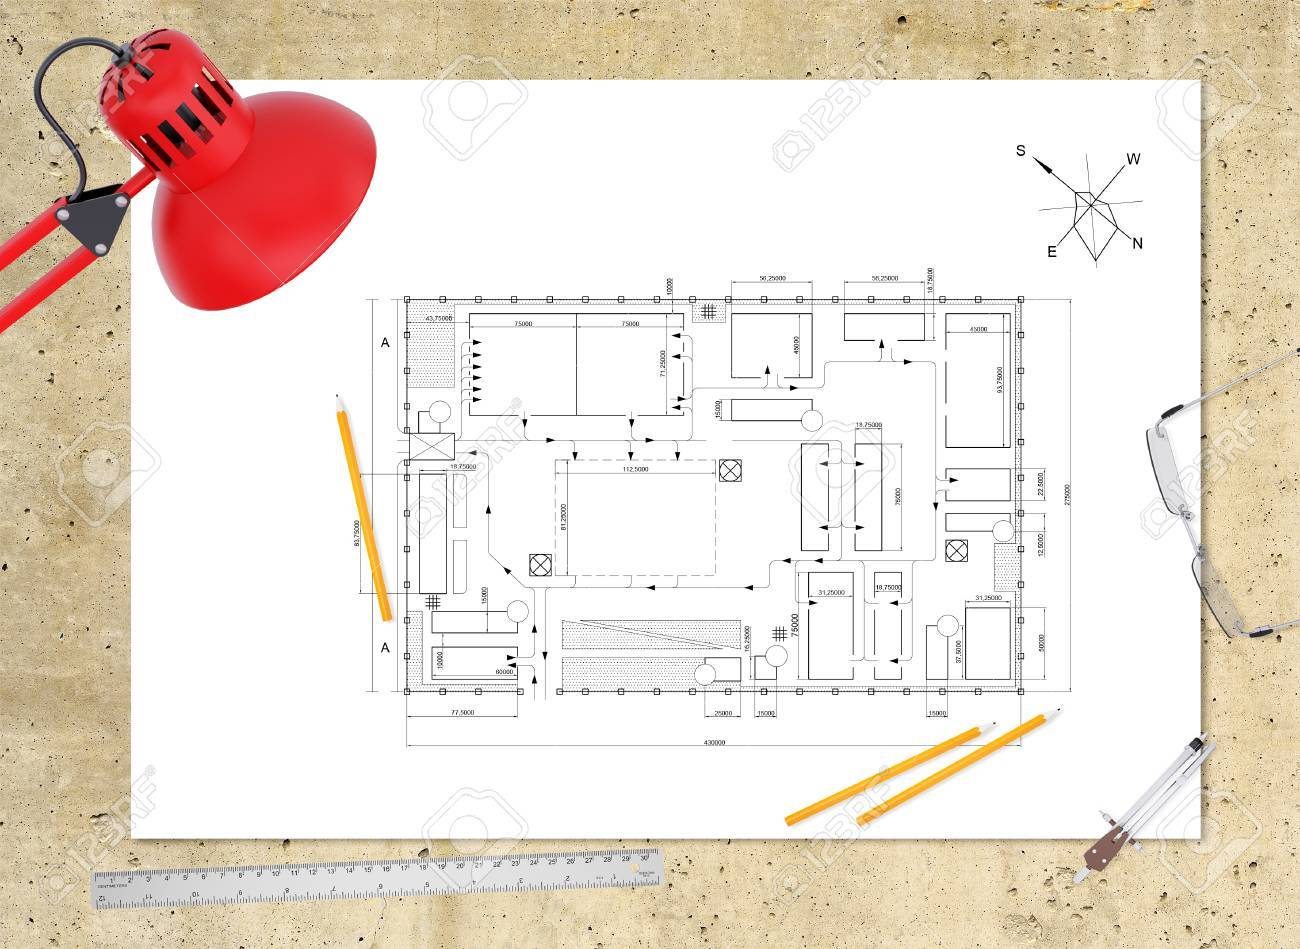 Technical Plan Of Building On Workplace Table Lamp Ruler Pencils Compasses And